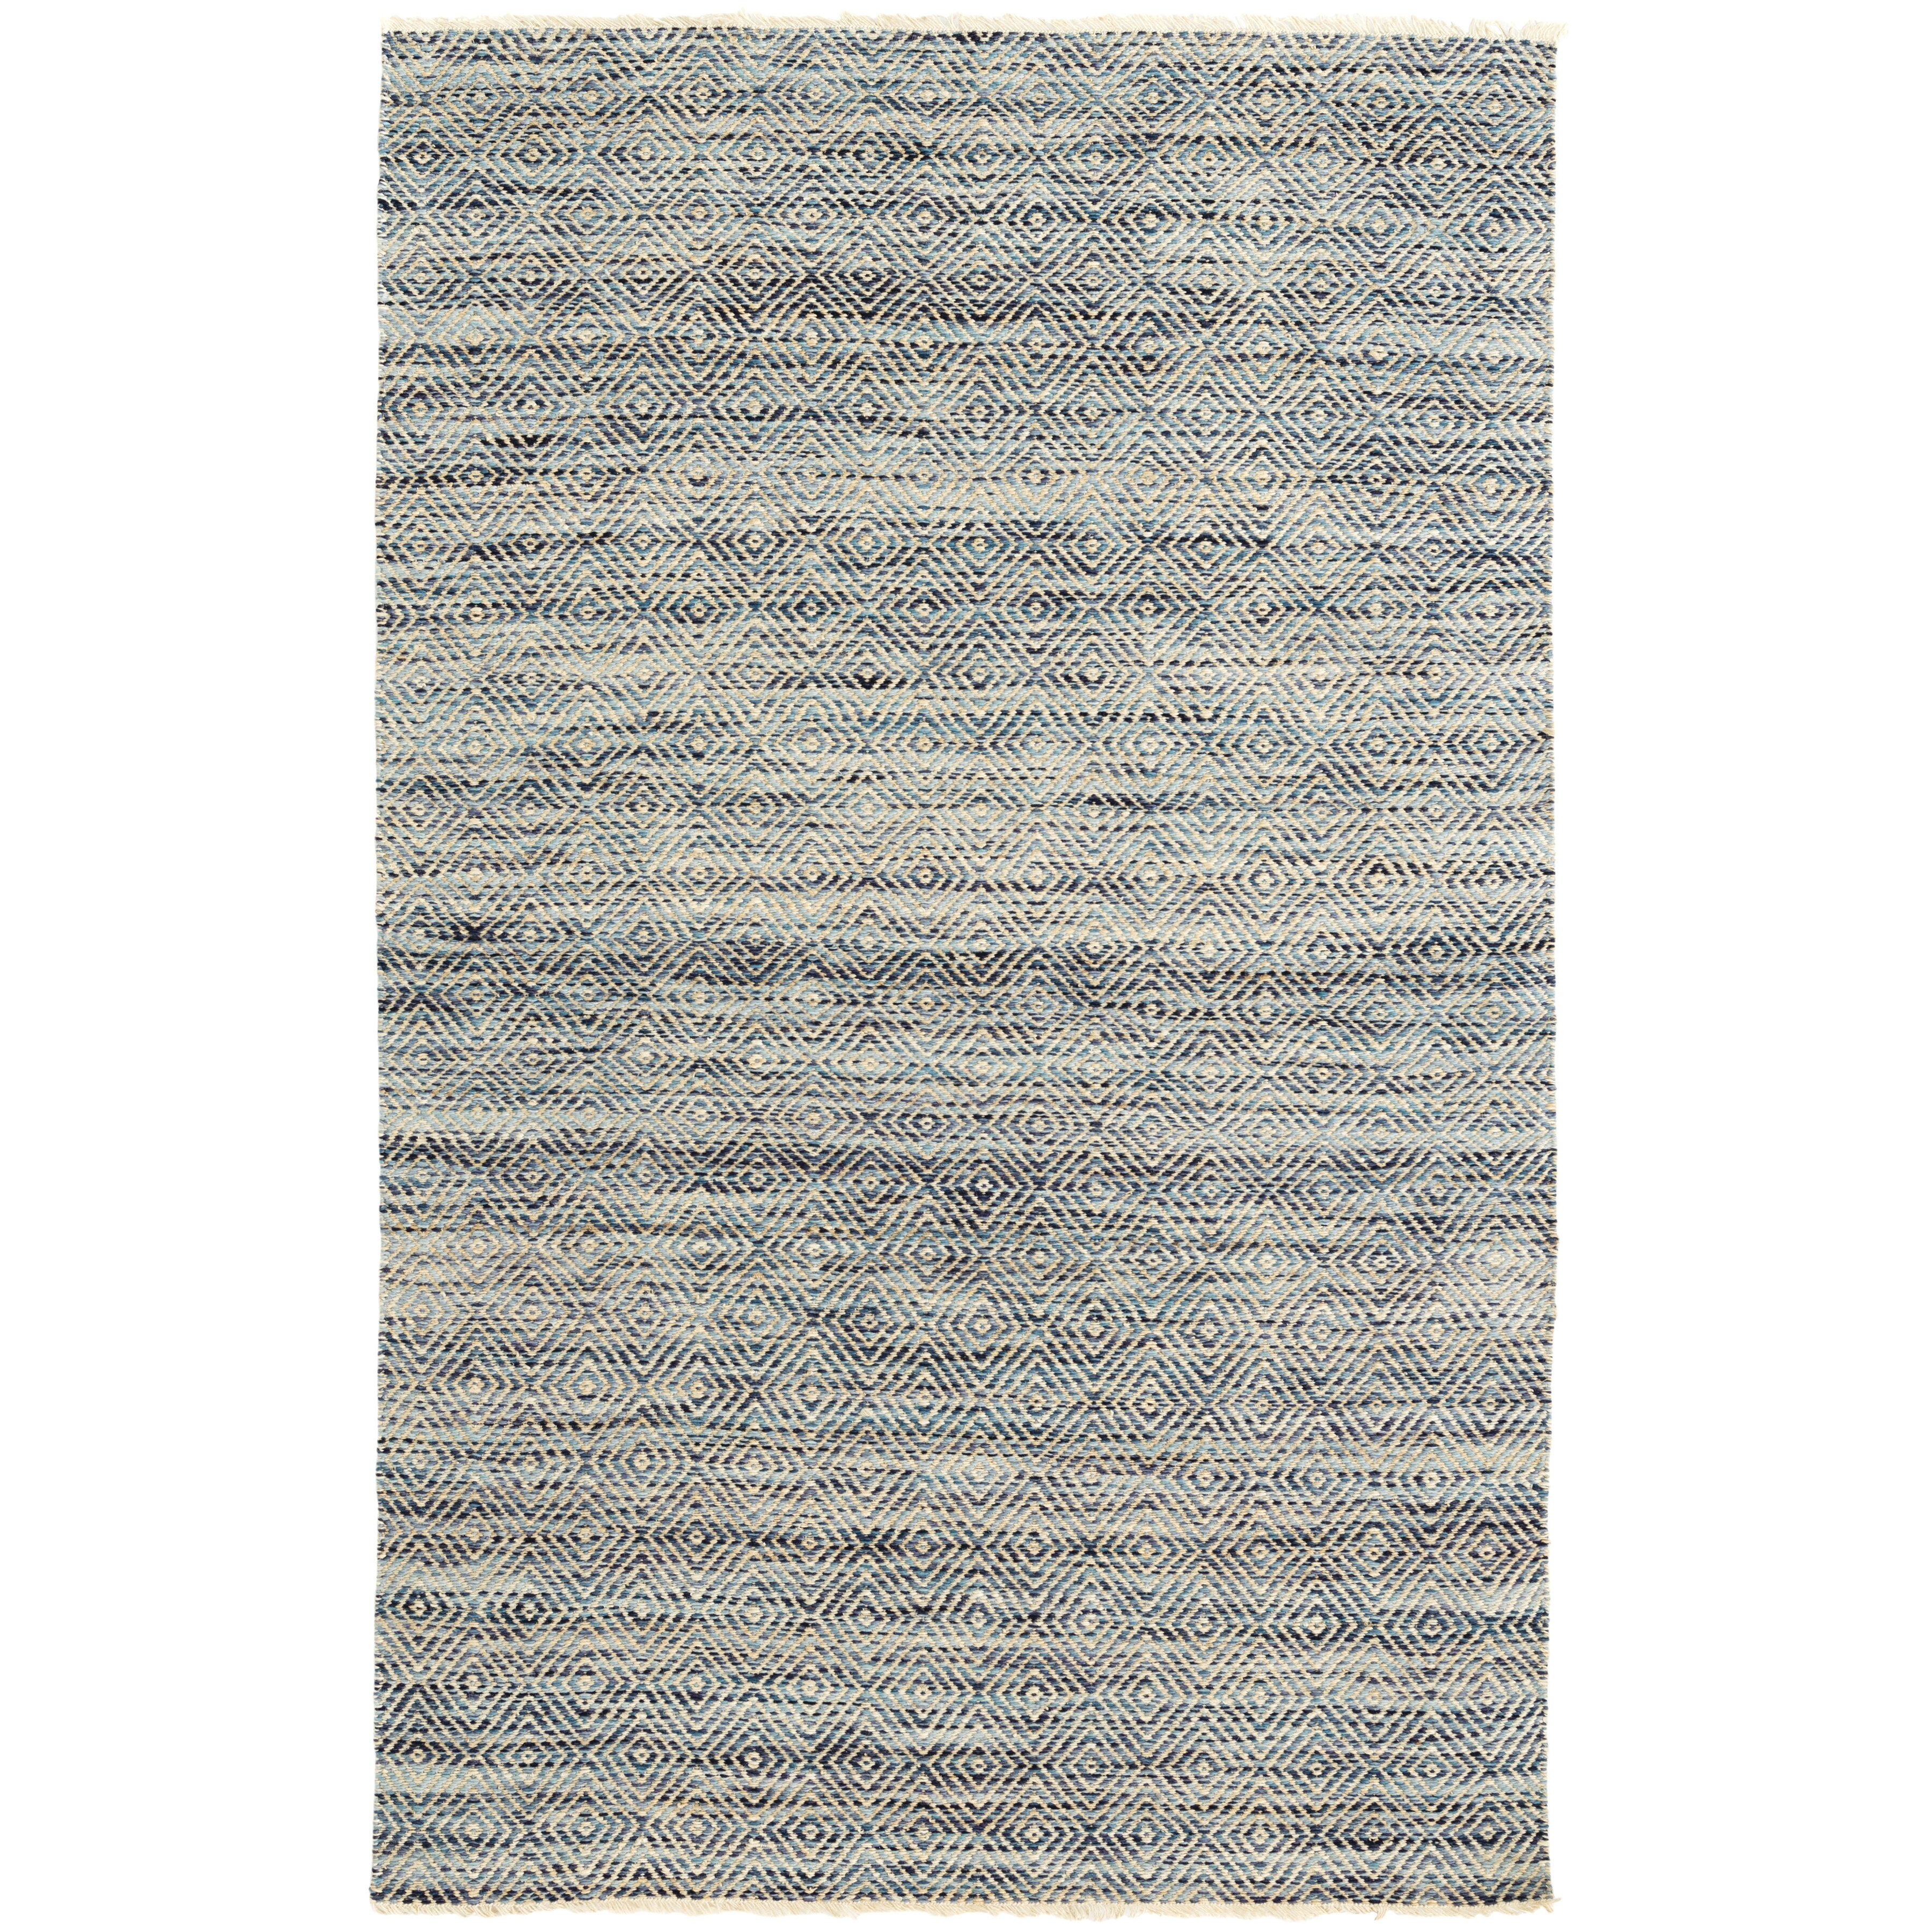 Dash and albert rugs jewel gray area rug reviews wayfair for Dash and albert wool rugs